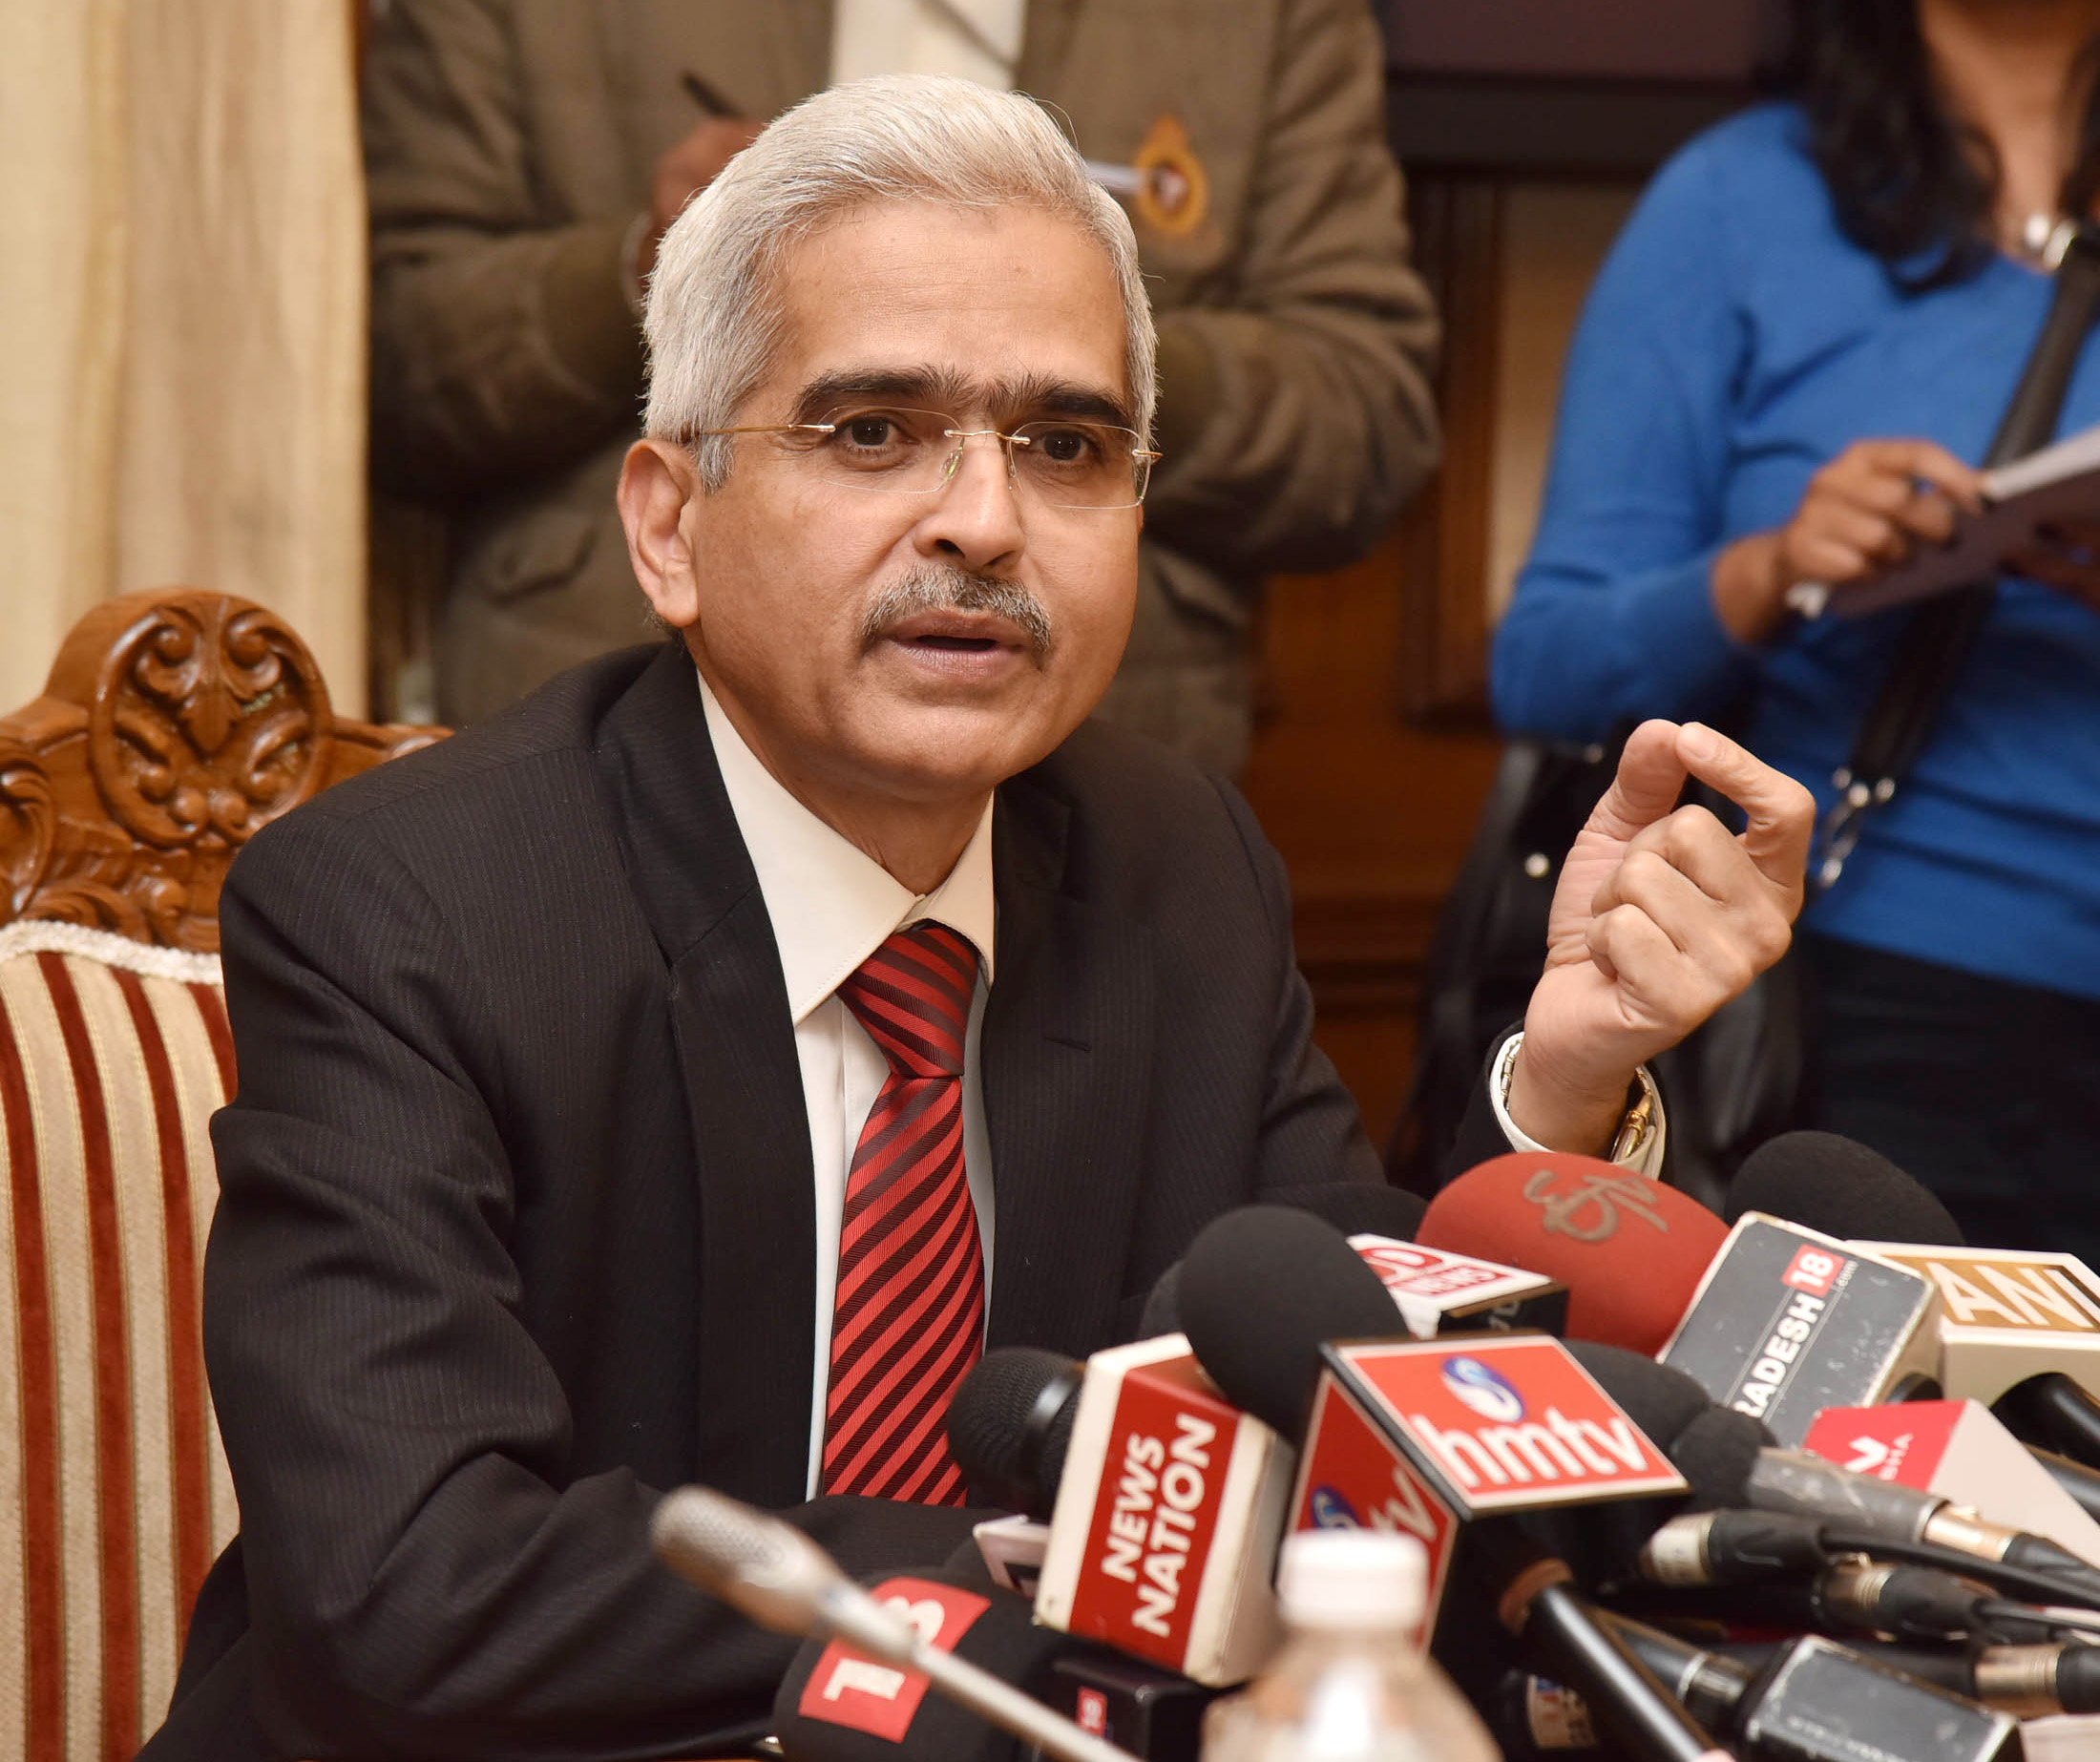 Banks and NBFCs to Co-Lend to Priority Sectors: RBI